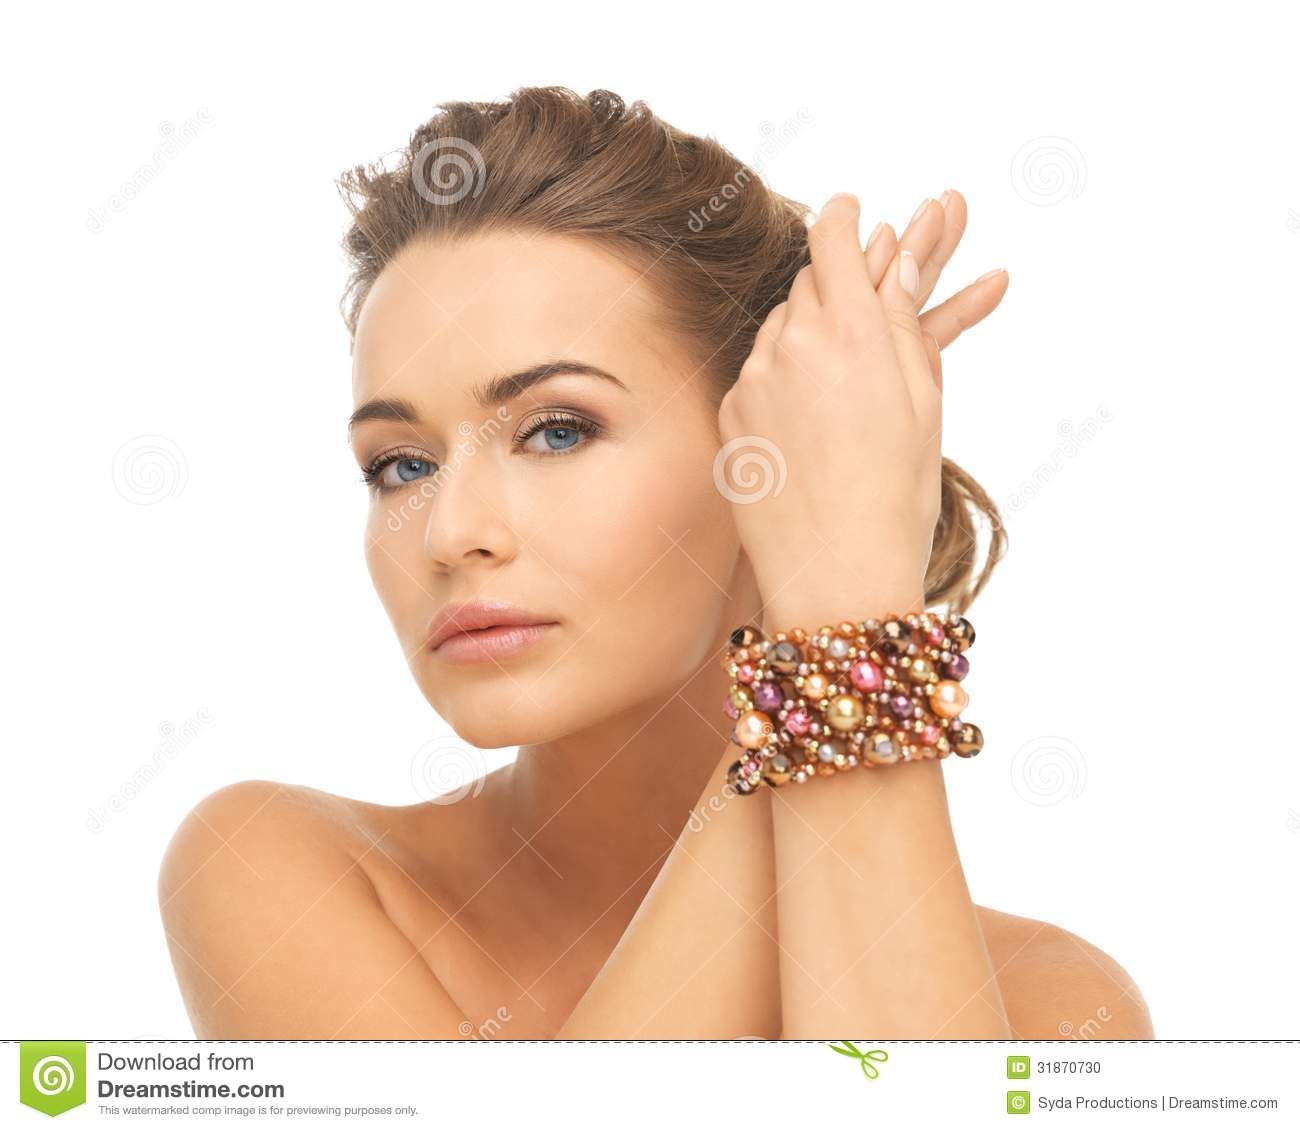 Woman Wearing Bracelet With Beads Stock Photo - Image of female ...